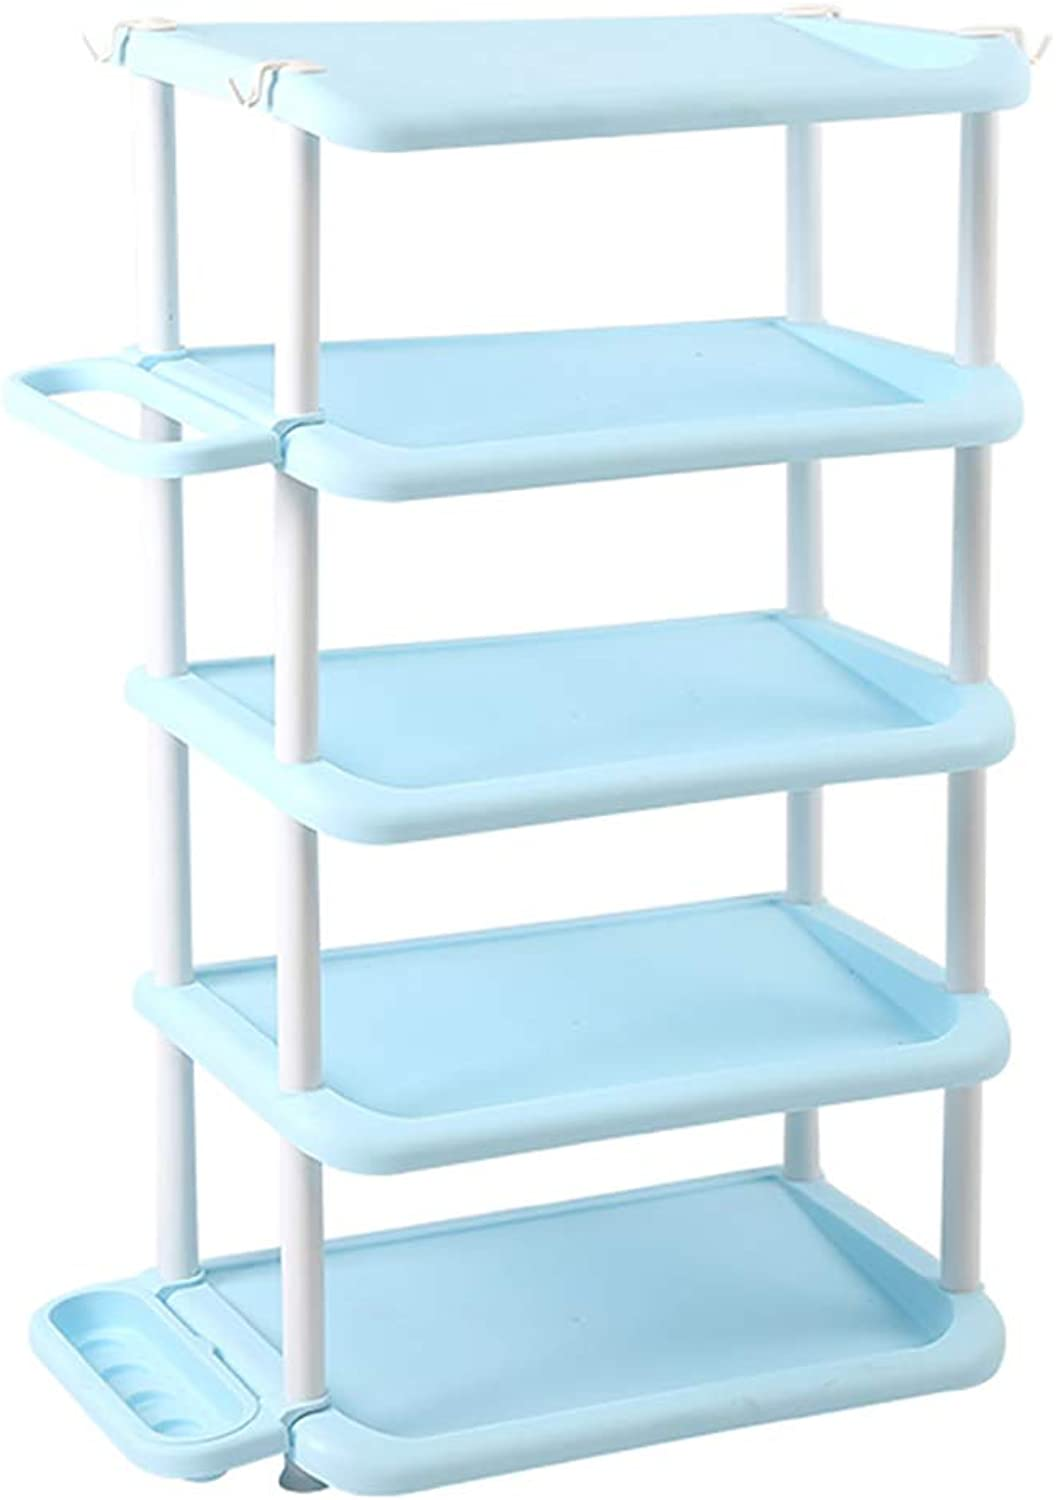 4 5 6-layer shoes Rack Shelf Umbrella Stand Storage Shelf shoes Cabinet Multifunction Household Doorway Entrance Space Saving (color   A, Size   47.5  31.5  85CM)